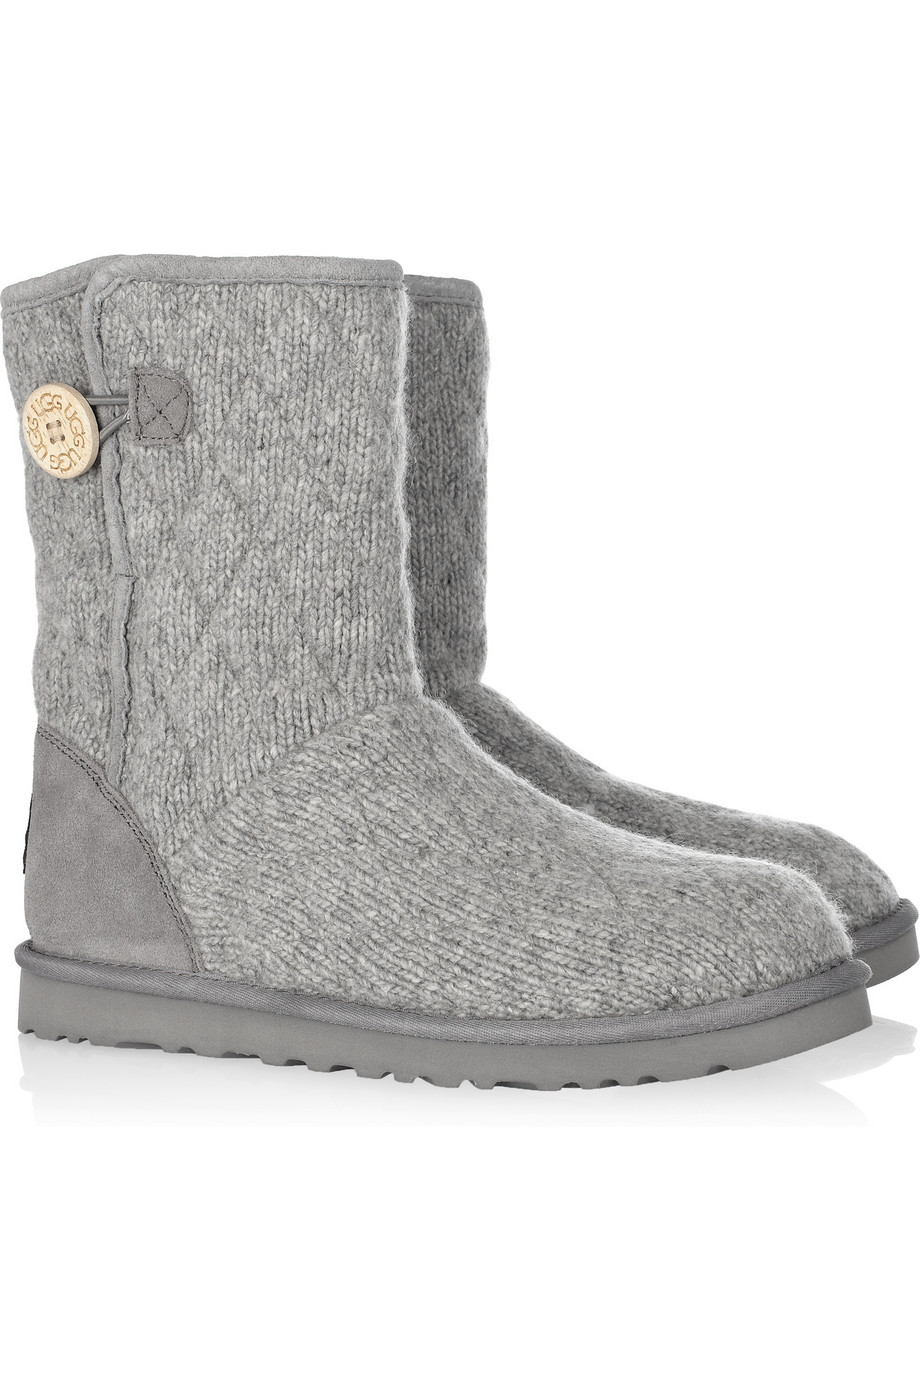 grey knitted ugg boots